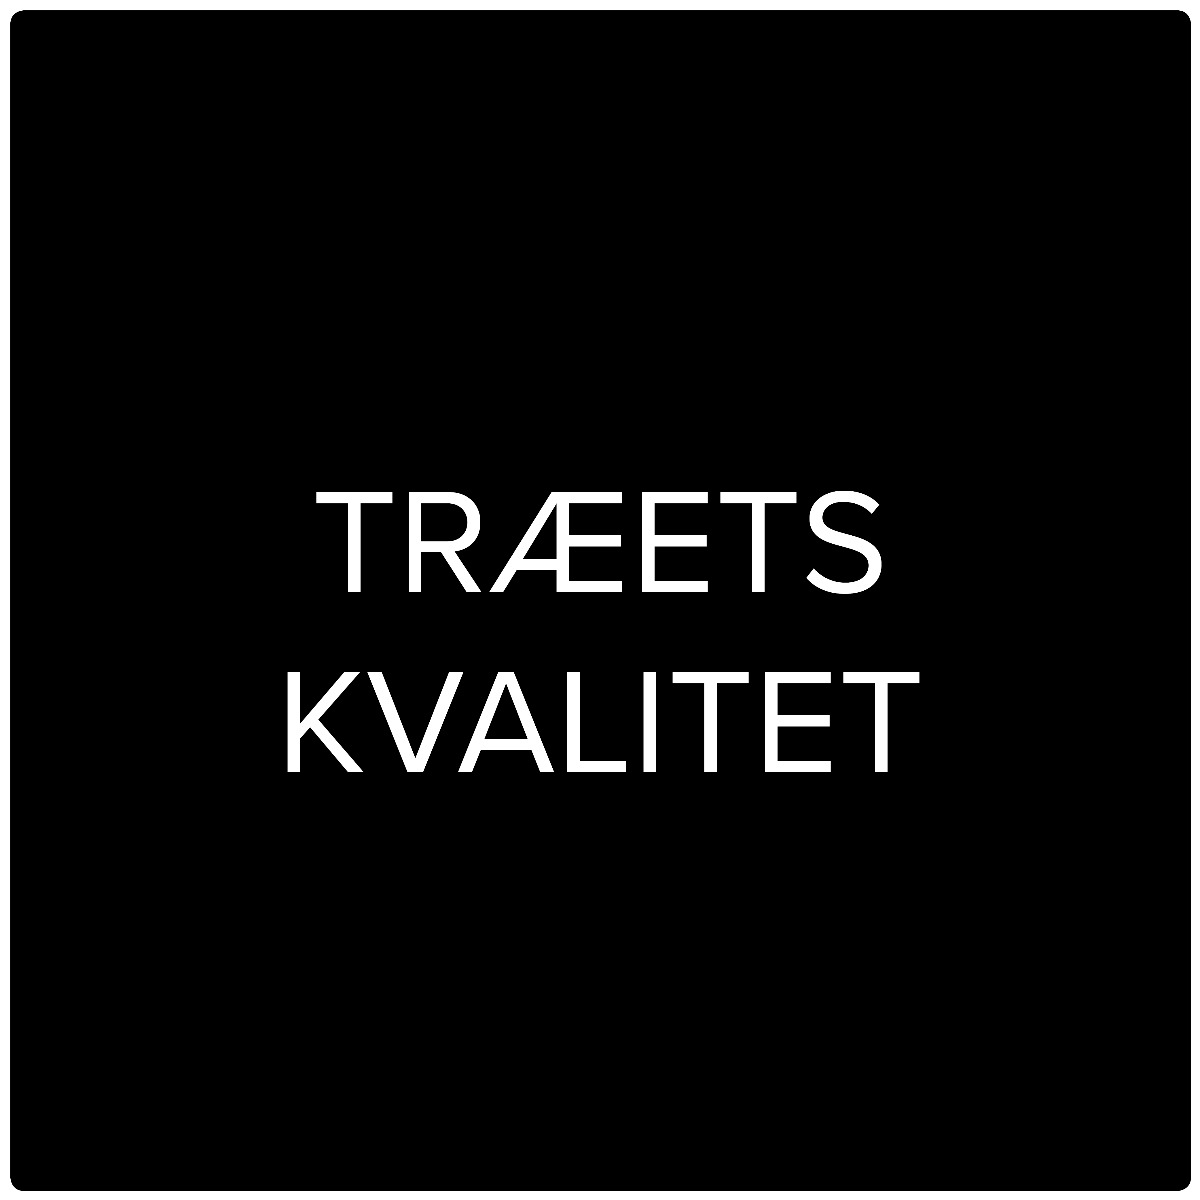 HWAM Video: Træets kvalitet